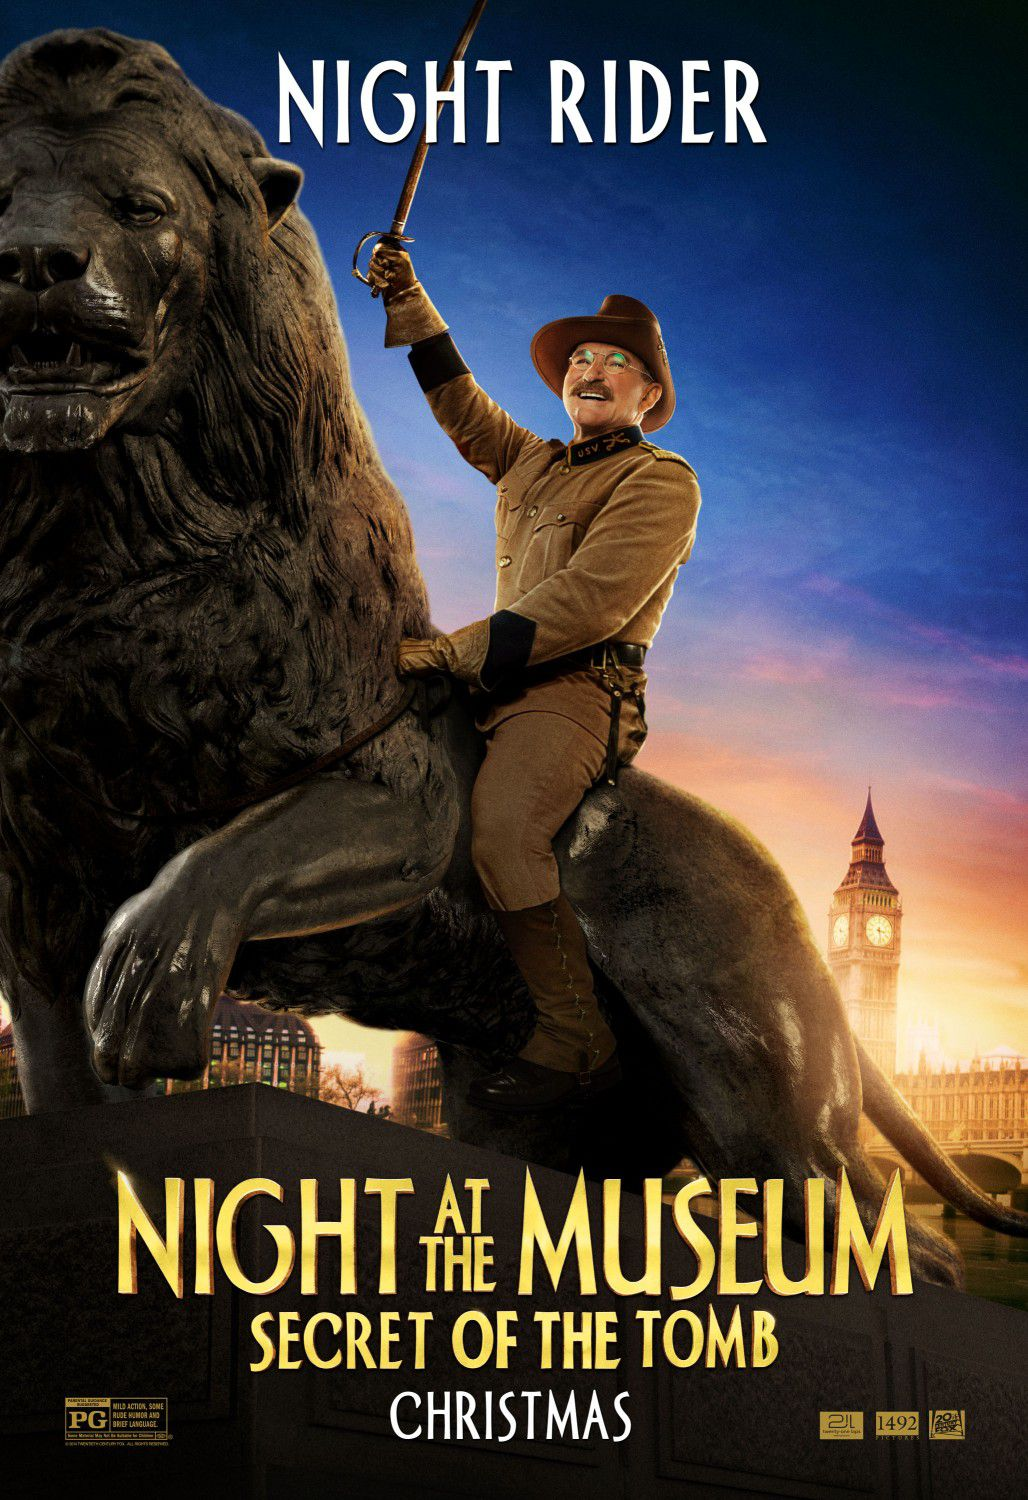 Una Notte al Museo 3 - Night at the Museum 3 - Secret of the Tomb - poster - night rider - Teddy Roosevelt (Robin Williams)